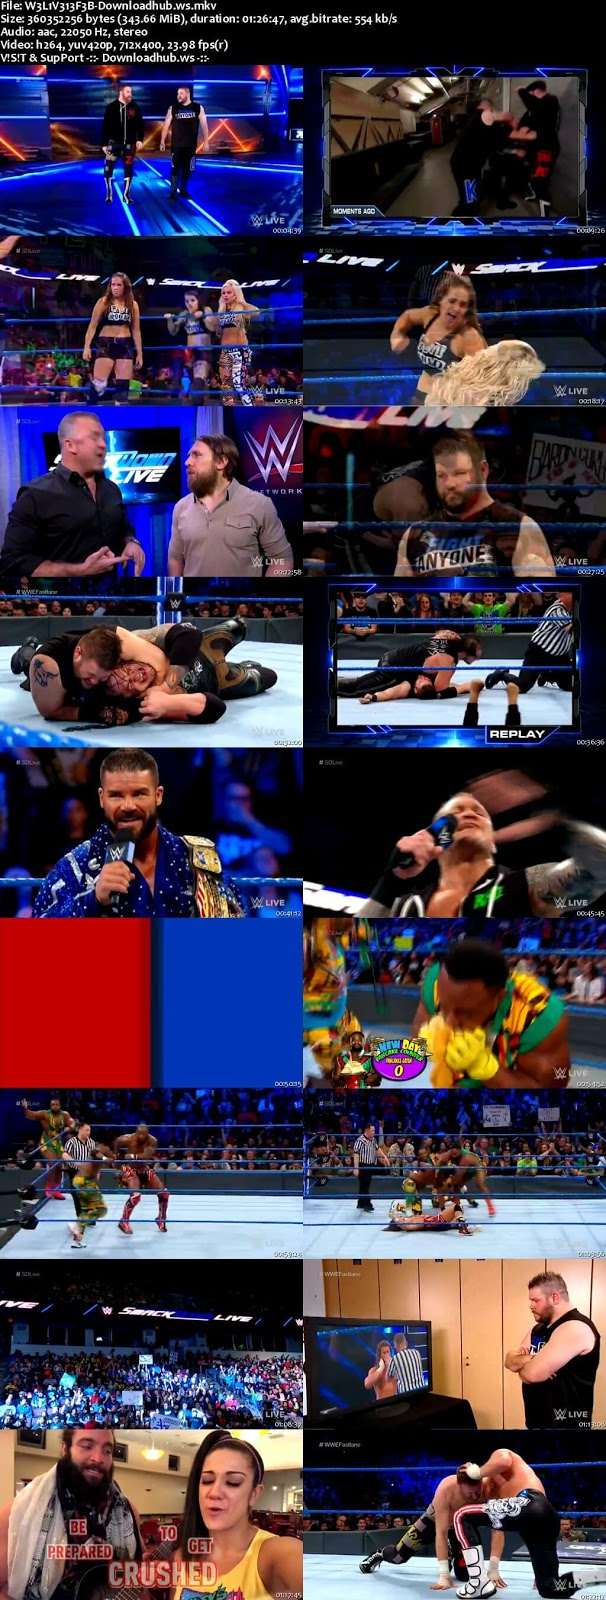 WWE Smackdown Live 13 February 2018 480p HDTV Download